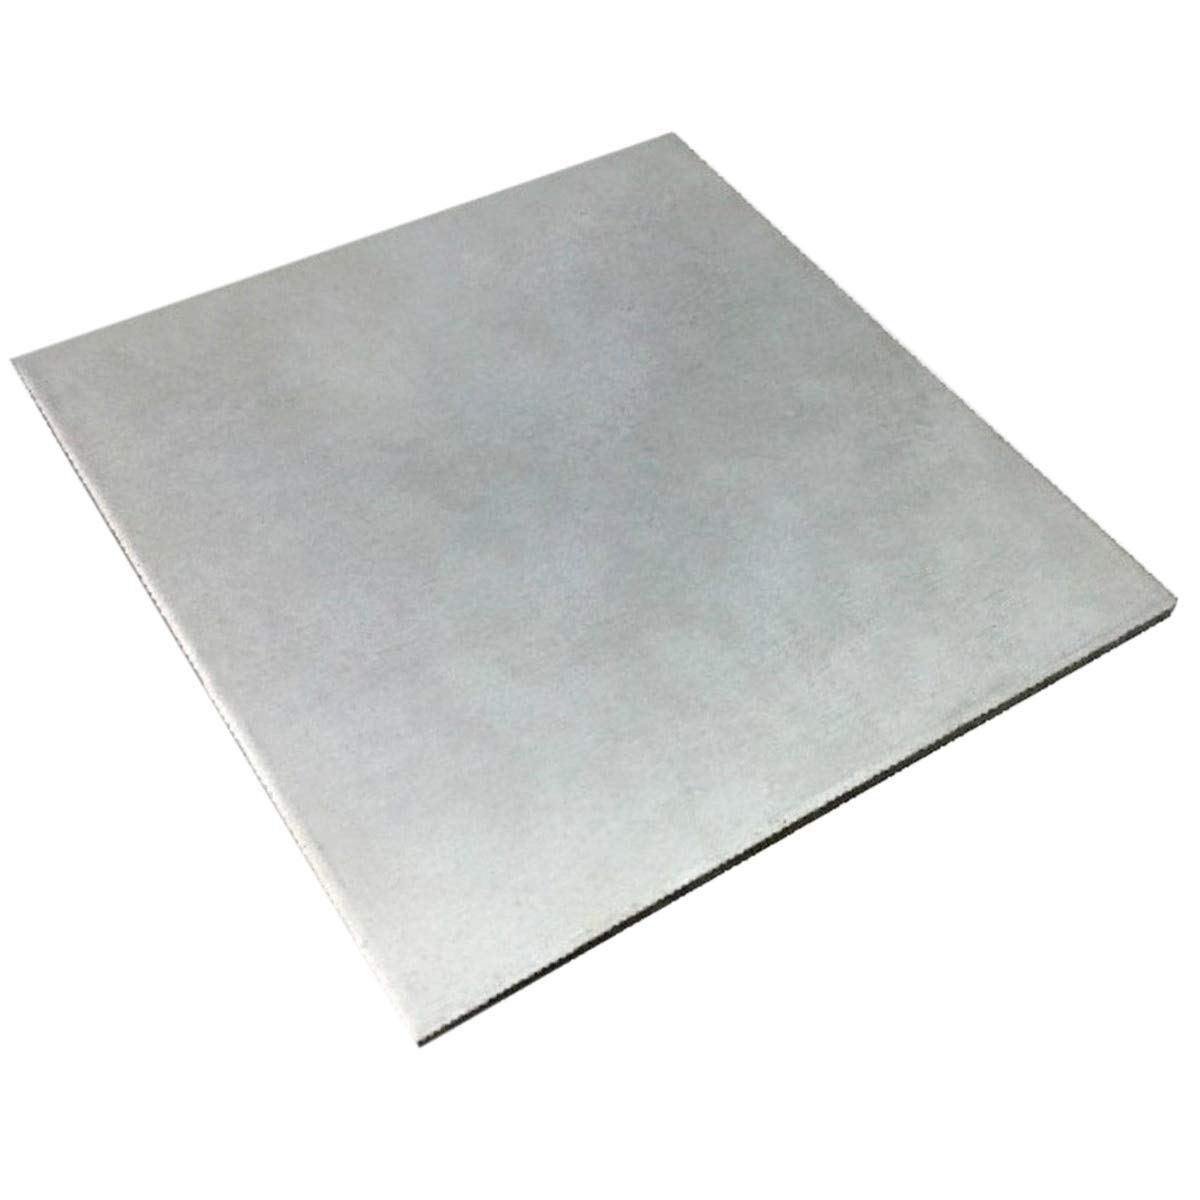 VHLL 1pc High Purity Metal Thin Titanium Plate 0.5mm Thickness TC4/GR5 ASTM B54 Ti Sheet Foil 100mmx100mm NEW PRODUCT